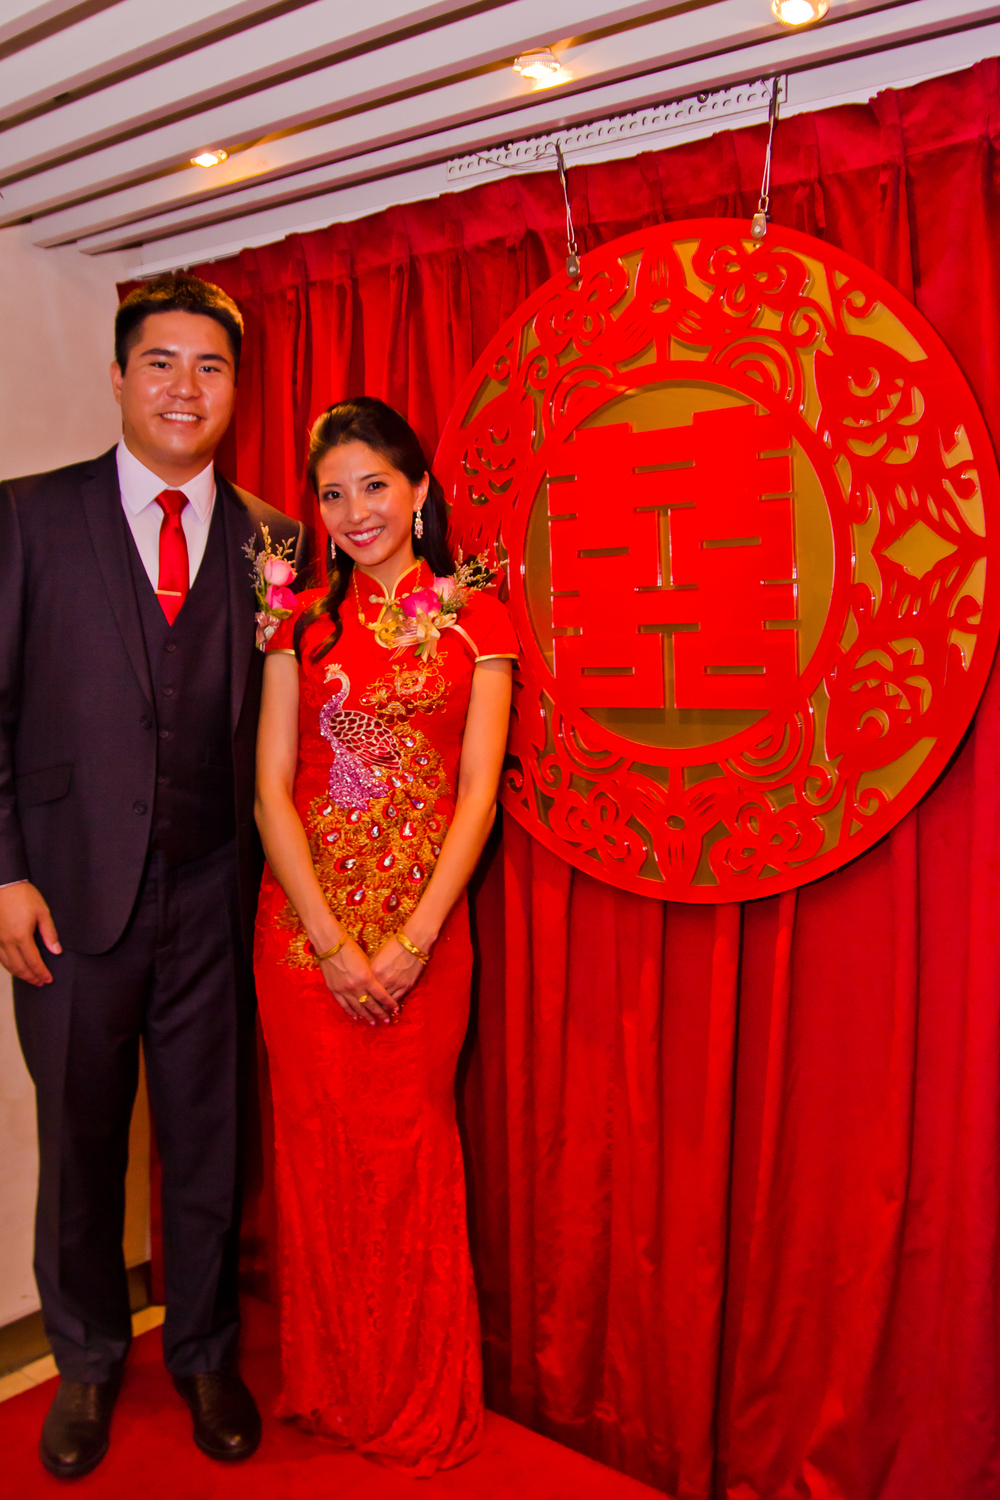 Events by Sonya Taiwanese Wedding Qipao Double Happiness